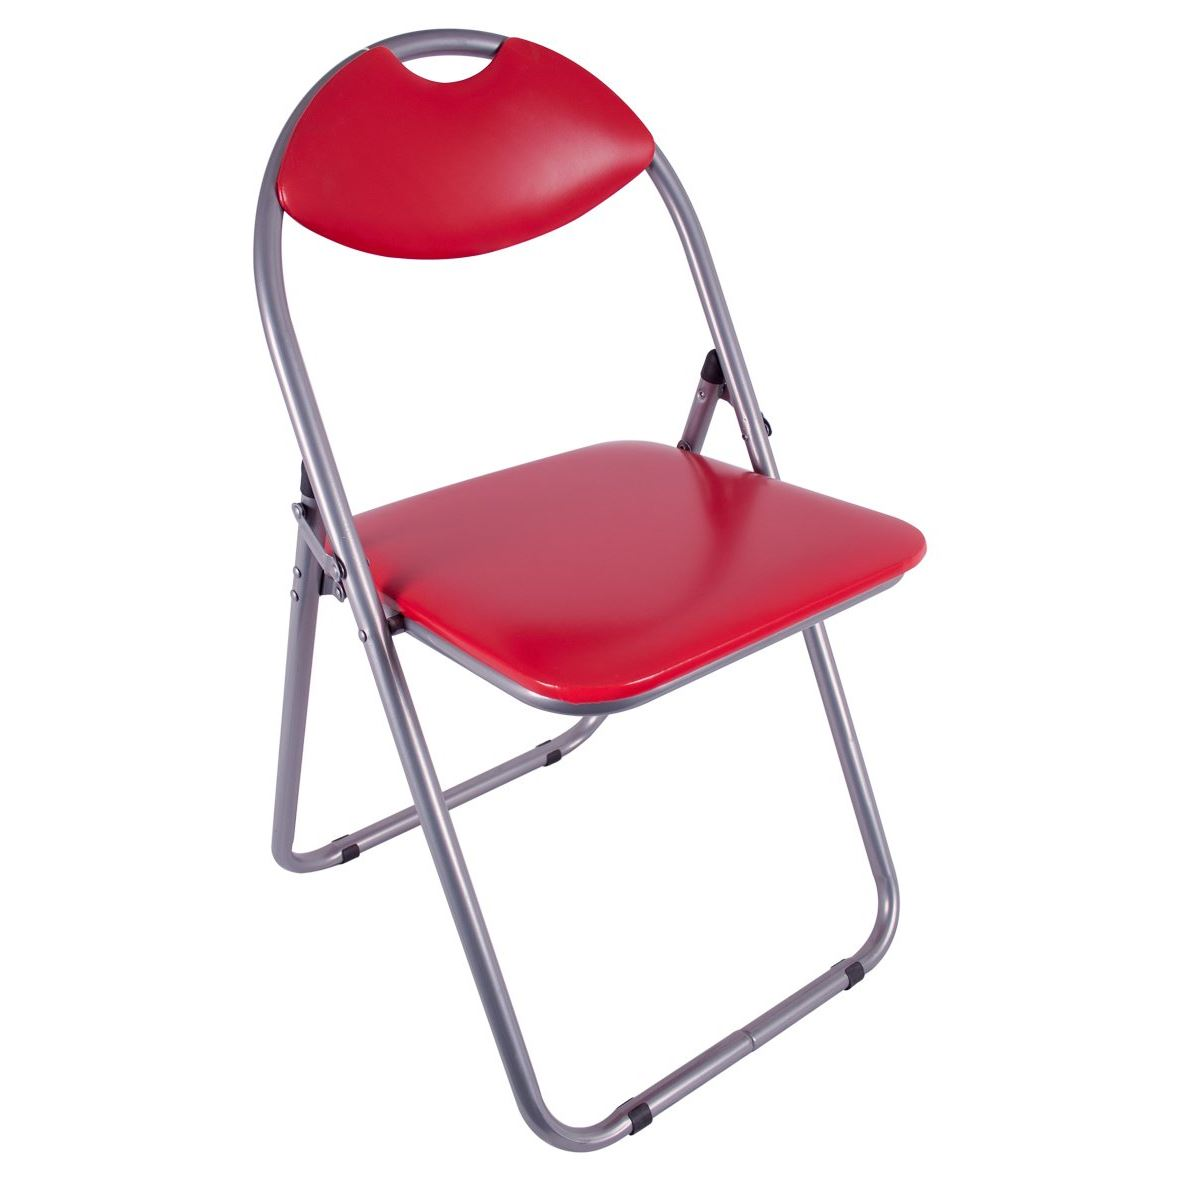 Folding Office Chair Padded Red Faux Leather Fold Up Seat Backrest Dining Home 5025301692605 Ebay